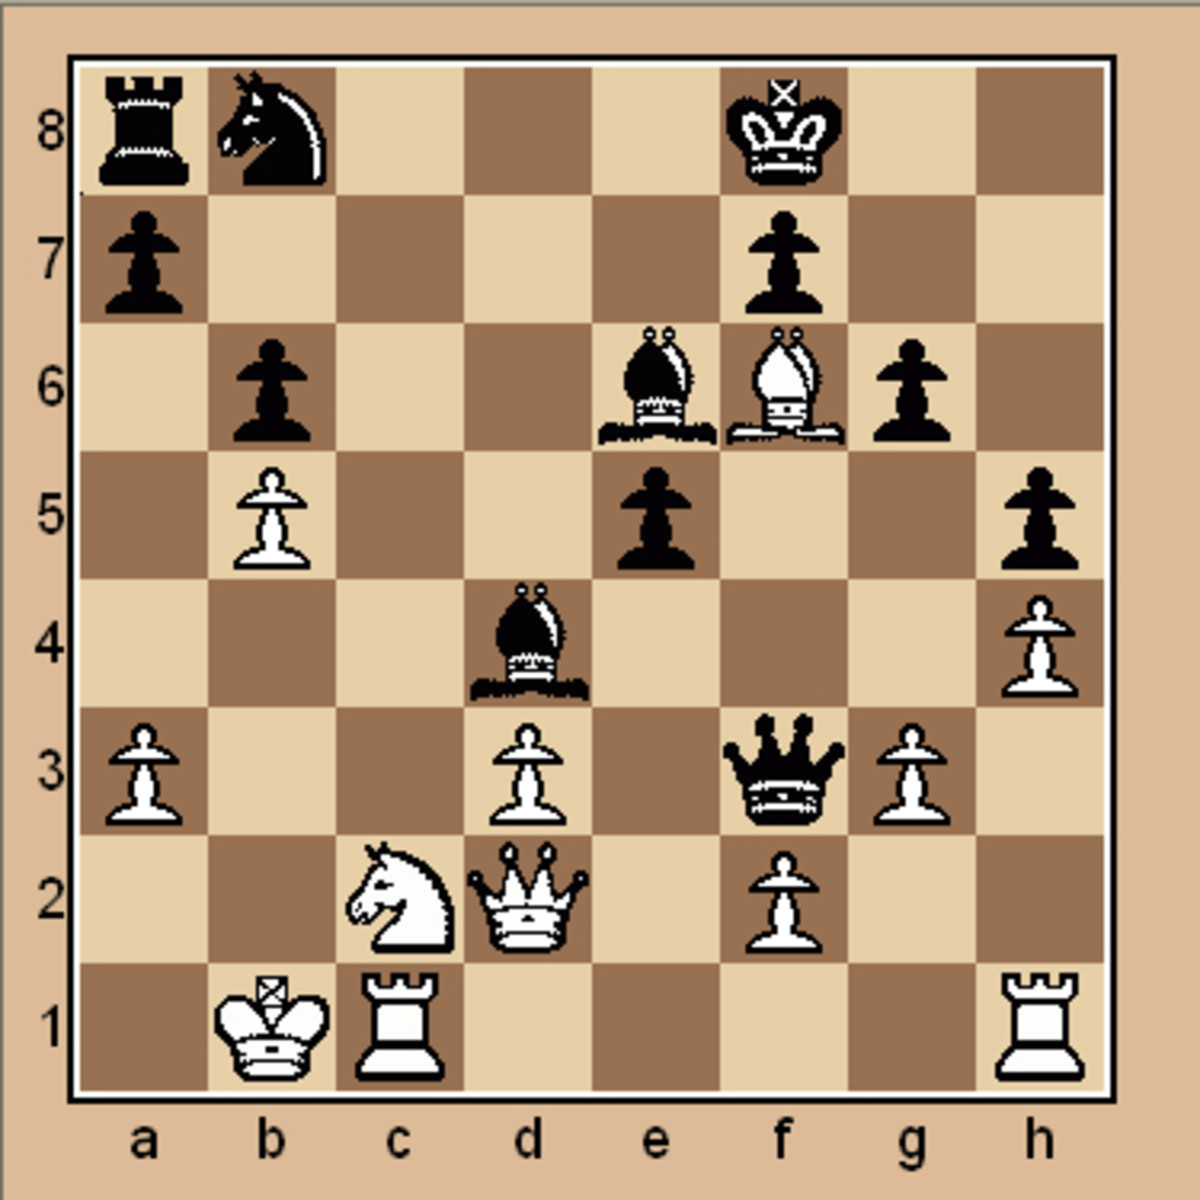 Please scroll down to see the mate in 3 chess puzzles.